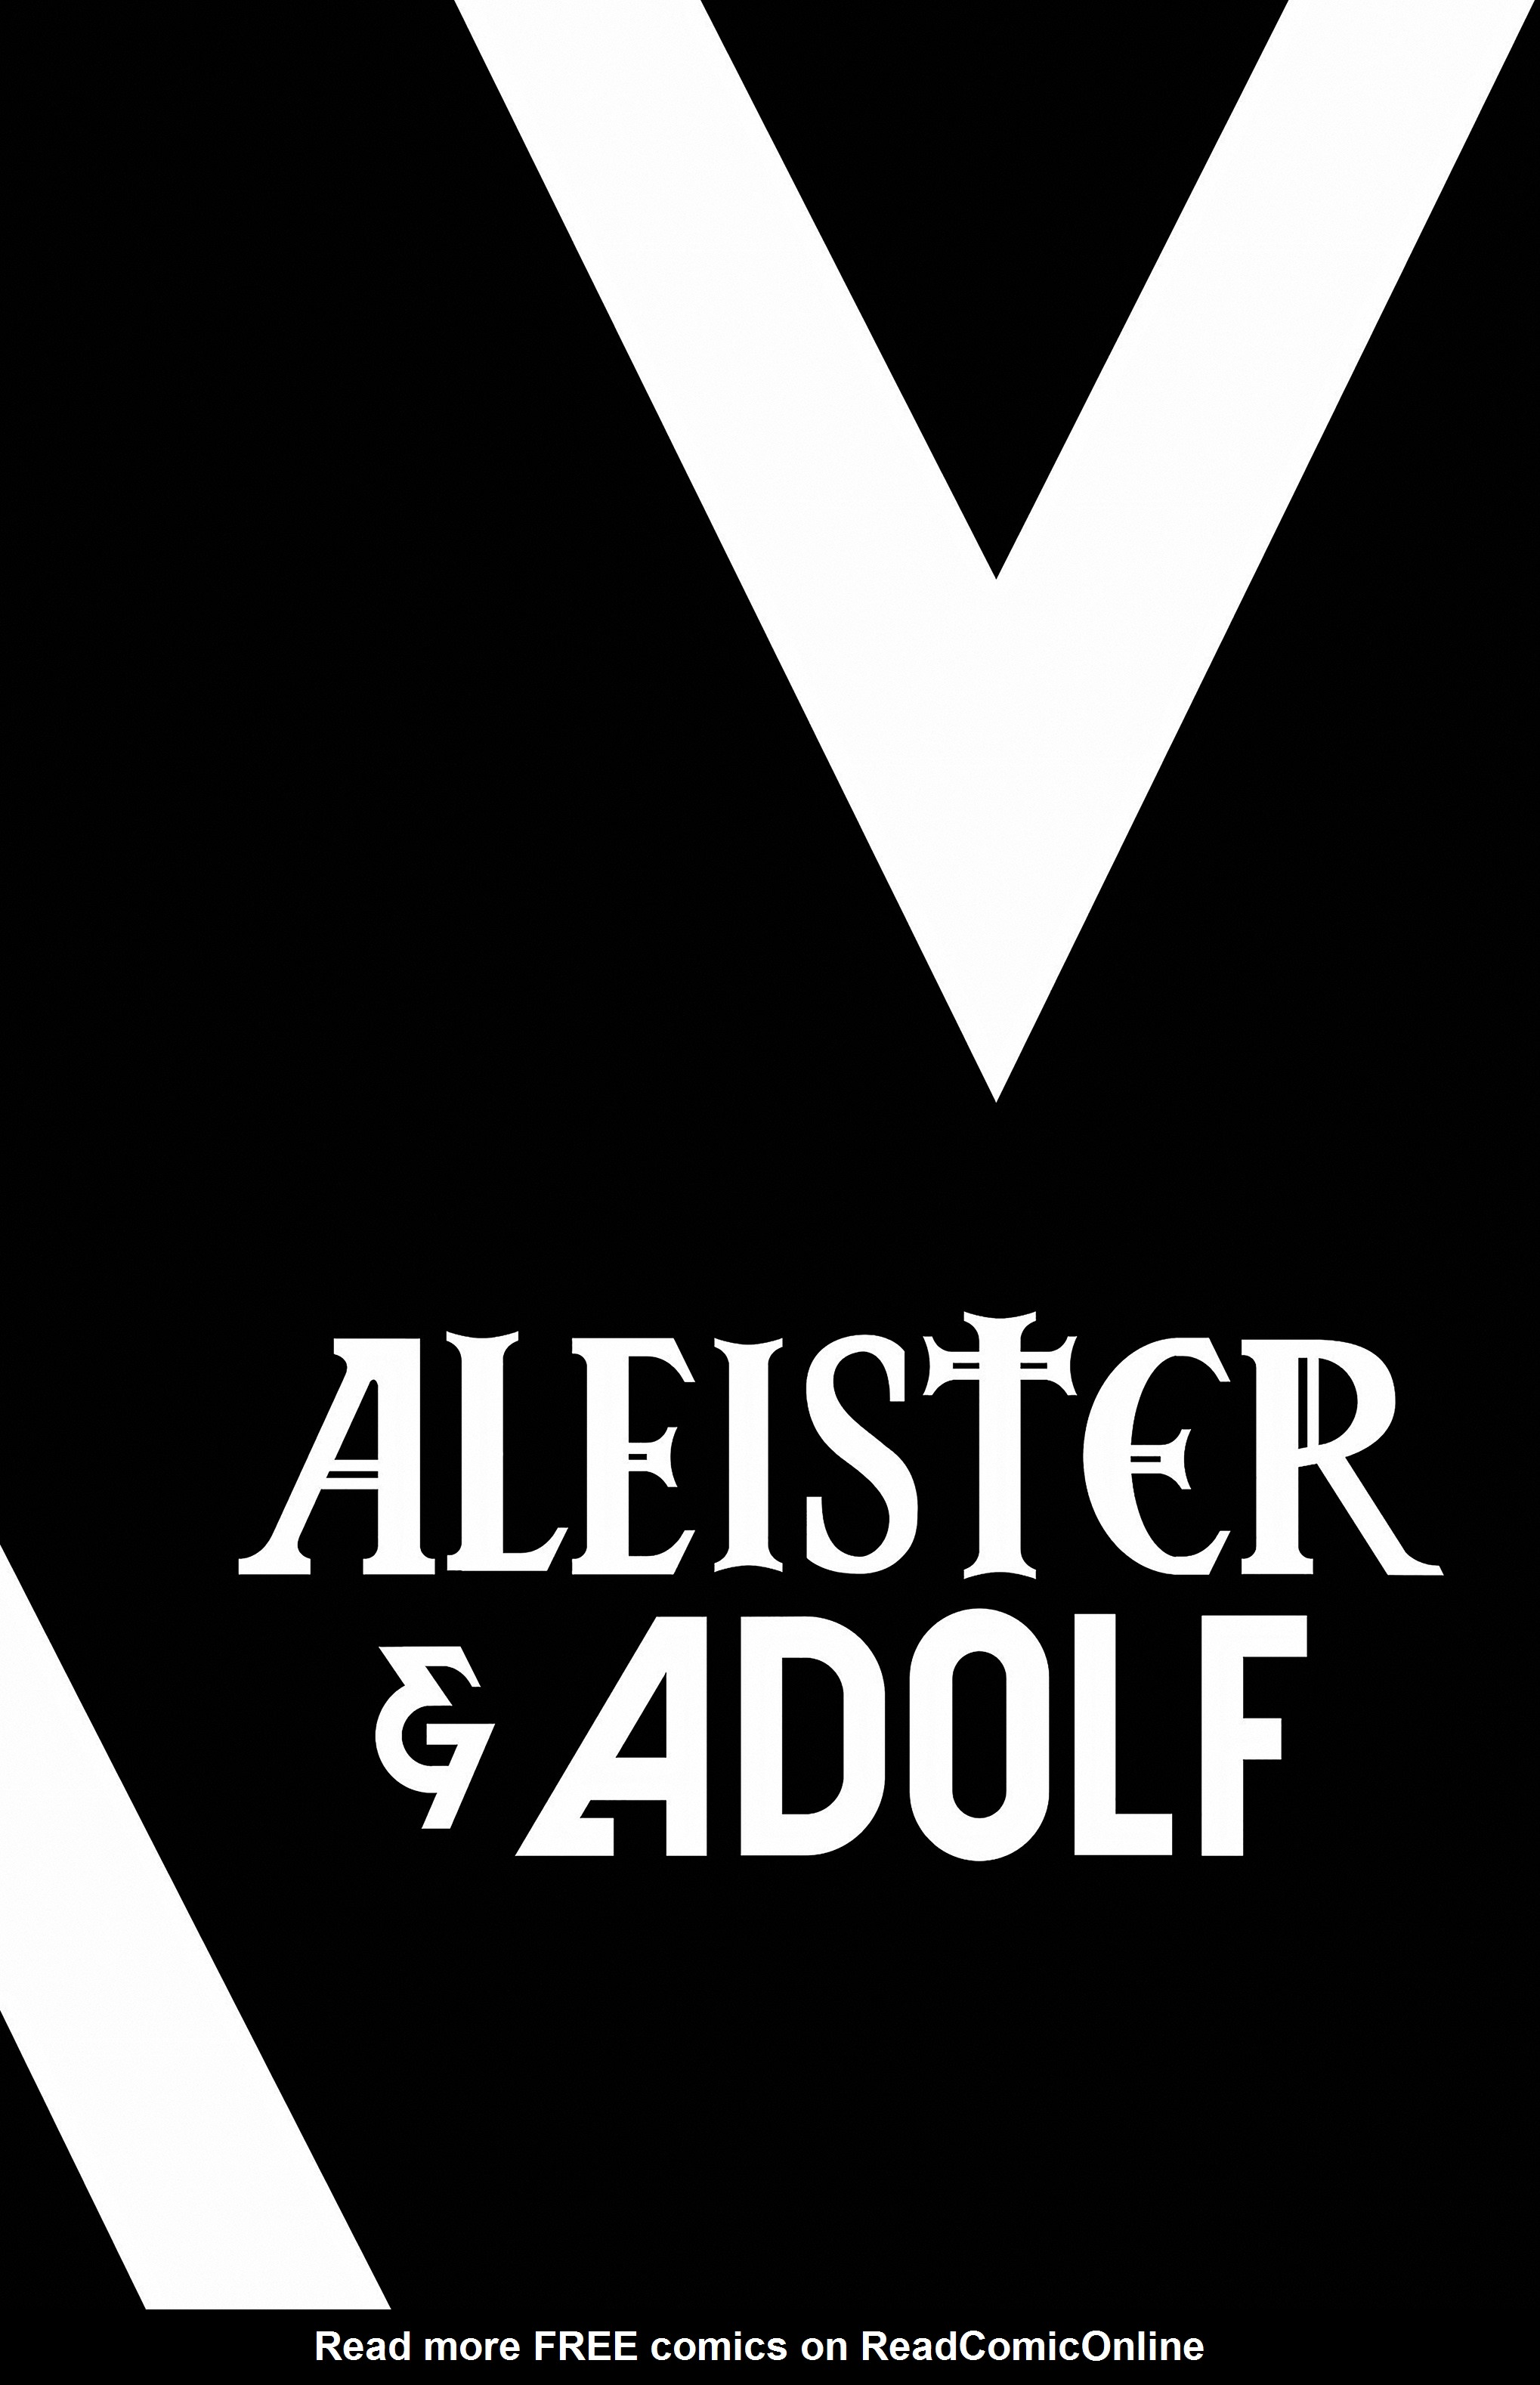 Read online Aleister & Adolf comic -  Issue # TPB - 3